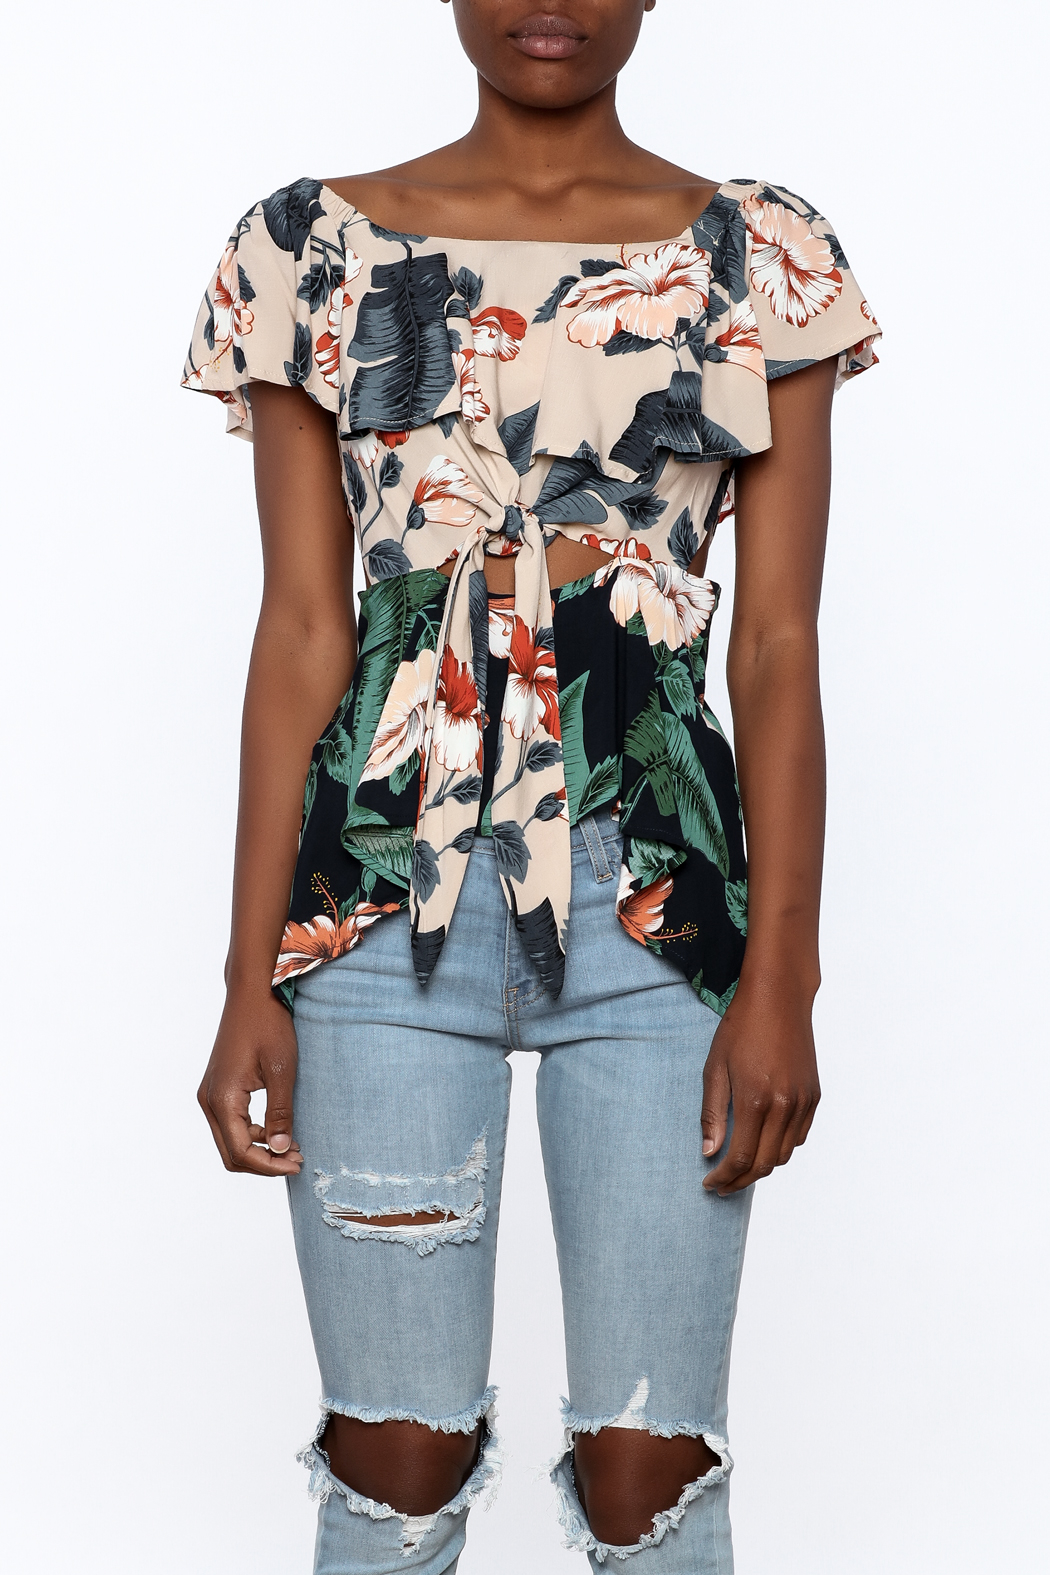 lunik Floral Front Tie Top - Side Cropped Image